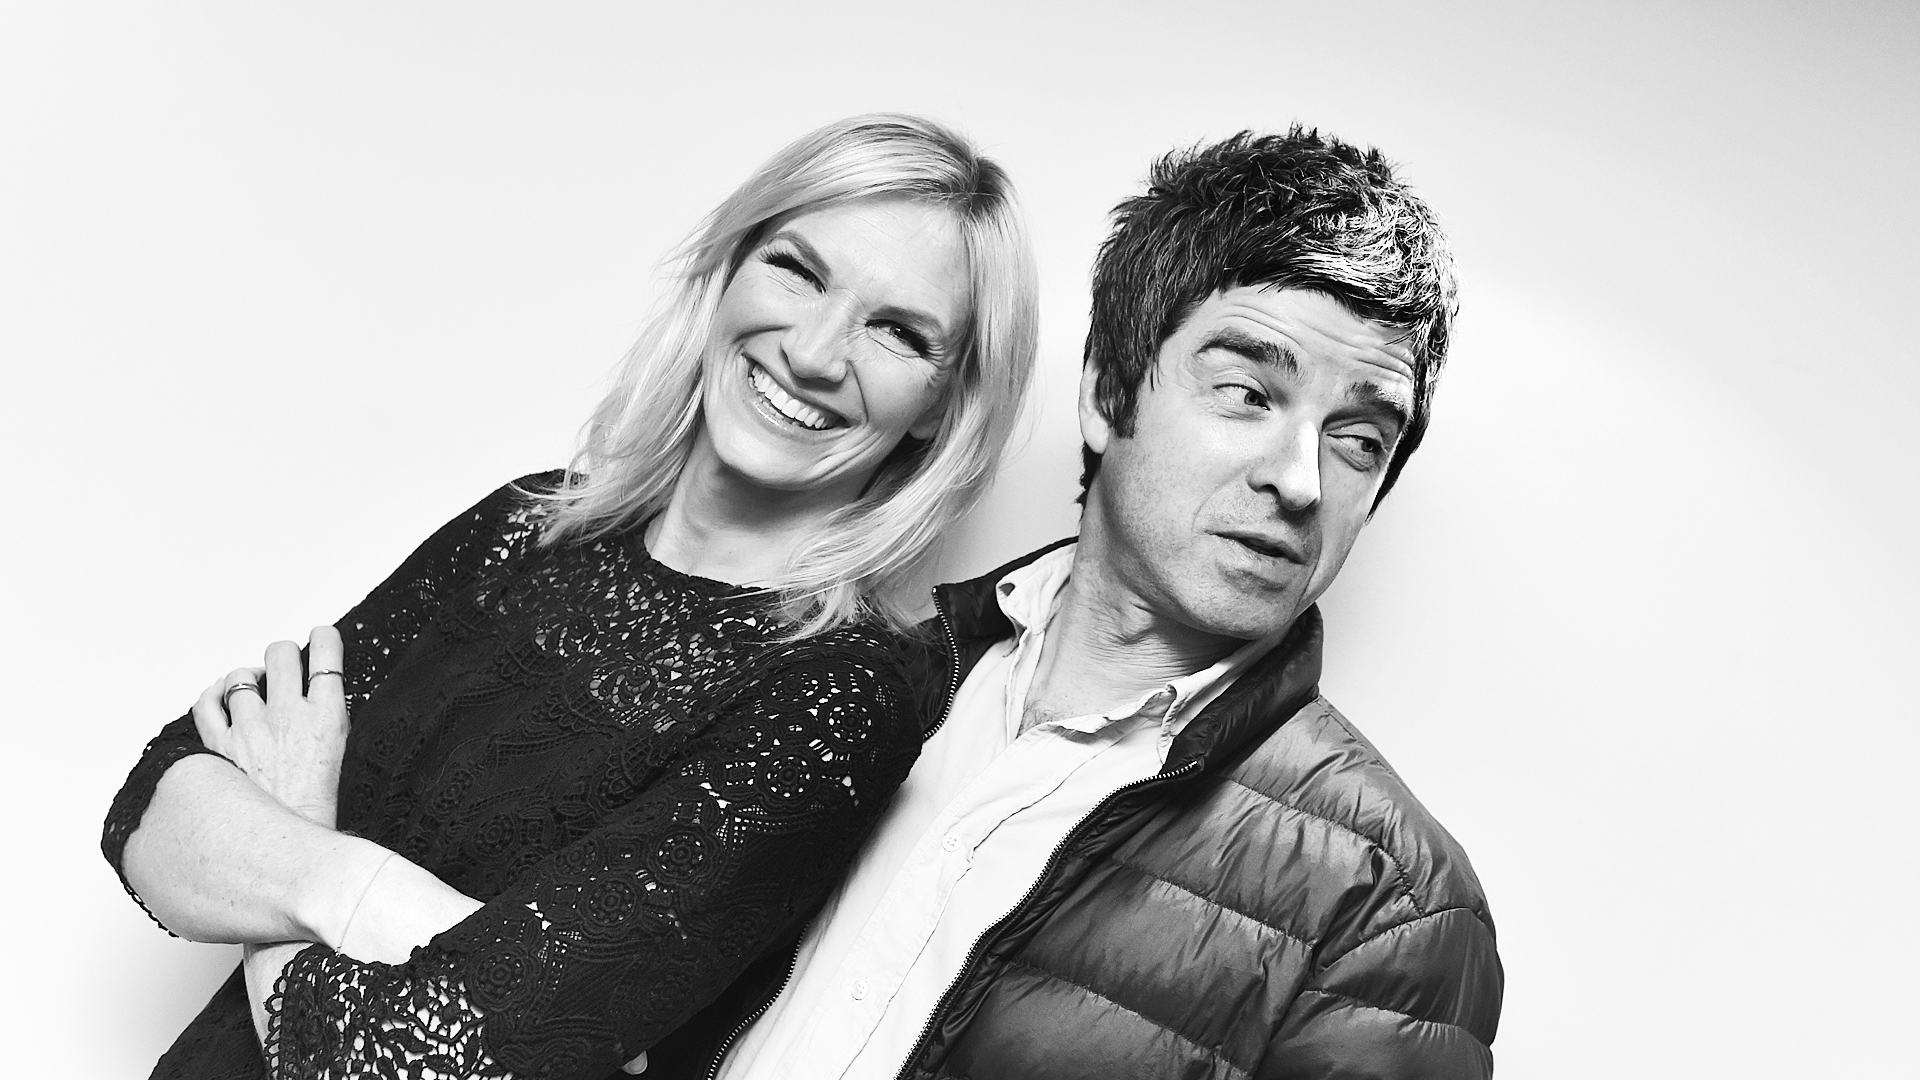 Jo Whiley and Noel Gallagher for 'BBC Radio 2 In Concert', 2015. Photographer: Sarah Jeynes. © BBC.